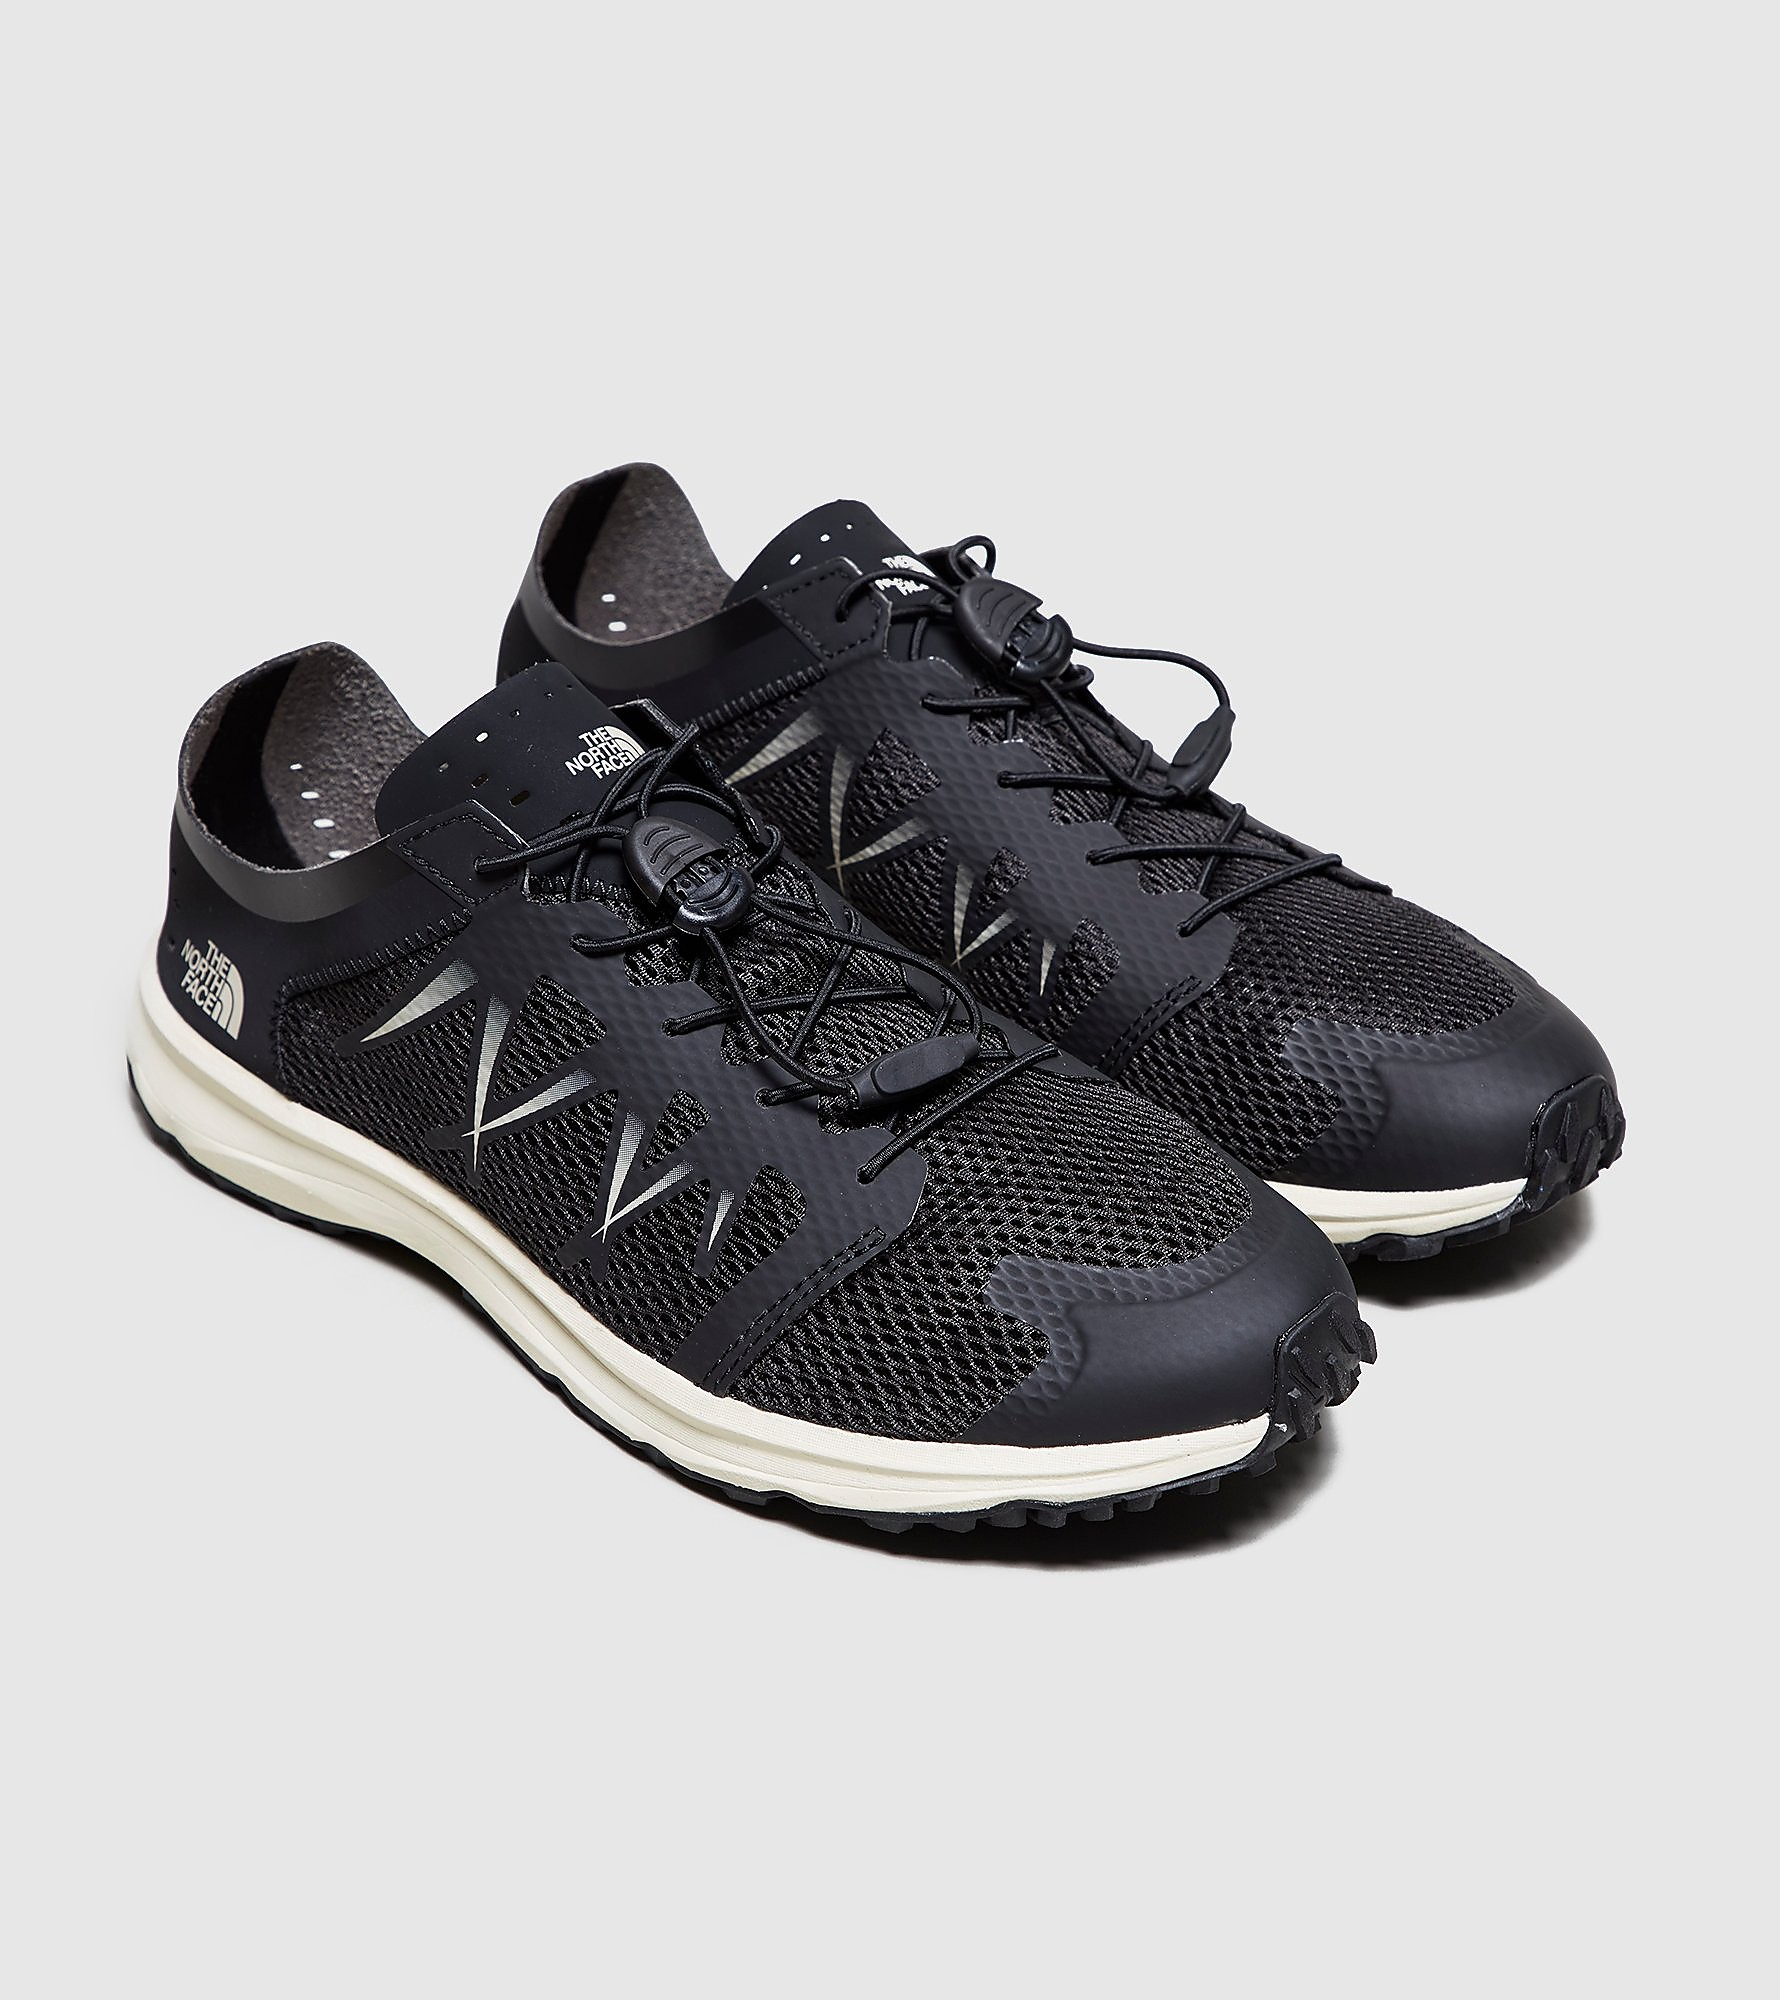 The North Face Litewave Fastpack GORE-TEX